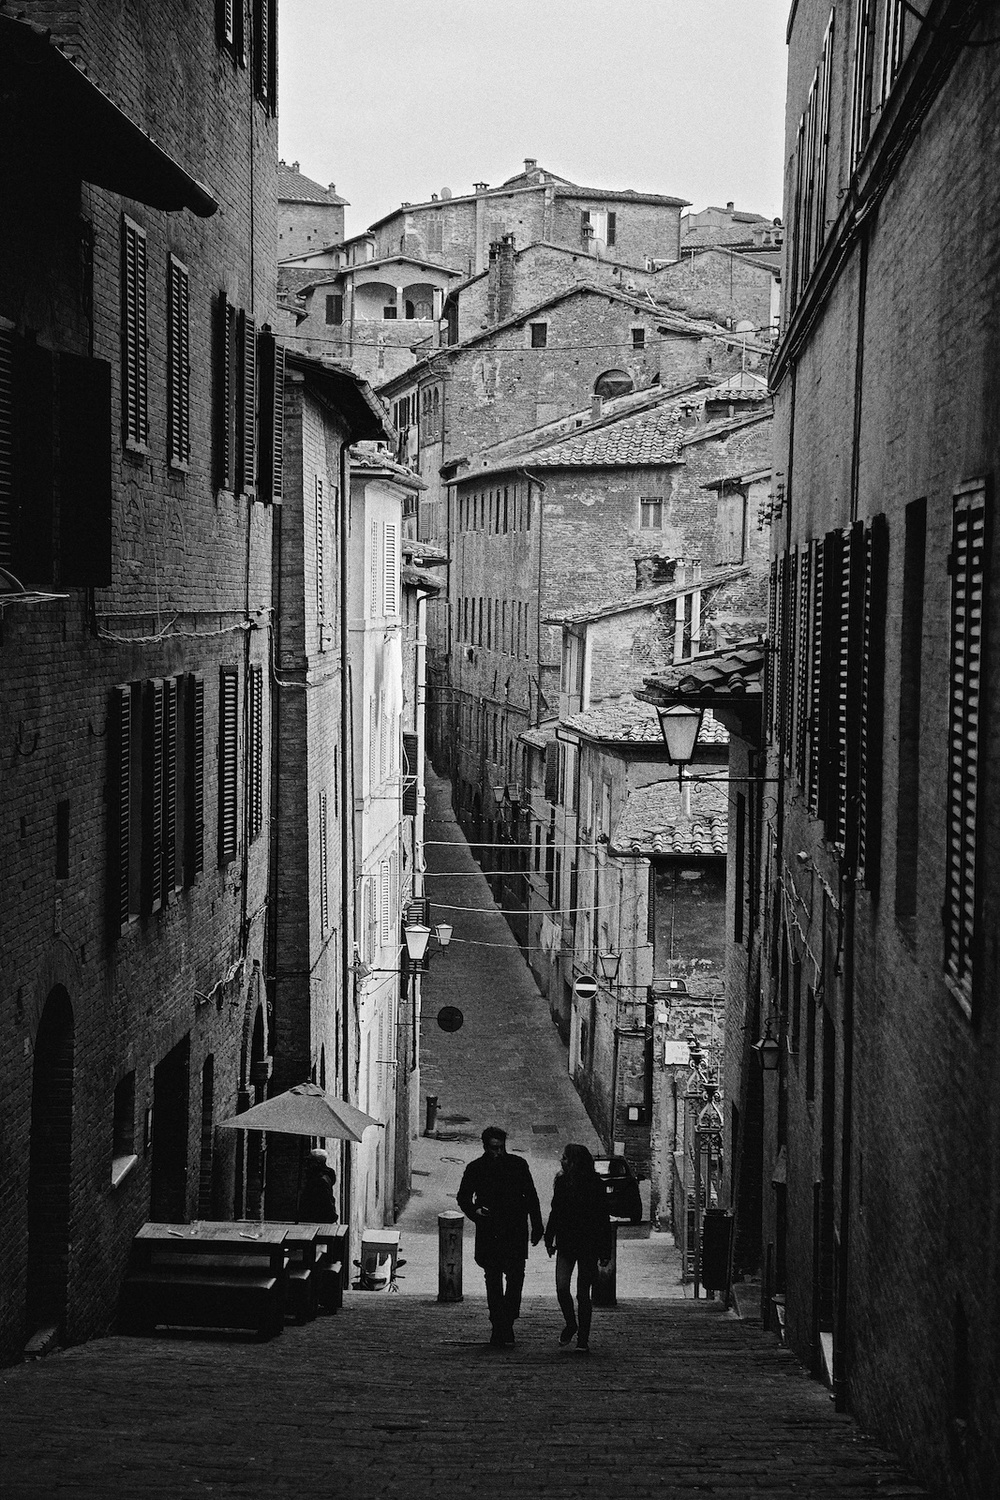 roofs-of-siena-toscana-tuscany-denis-bosnic-photography- (2).jpg